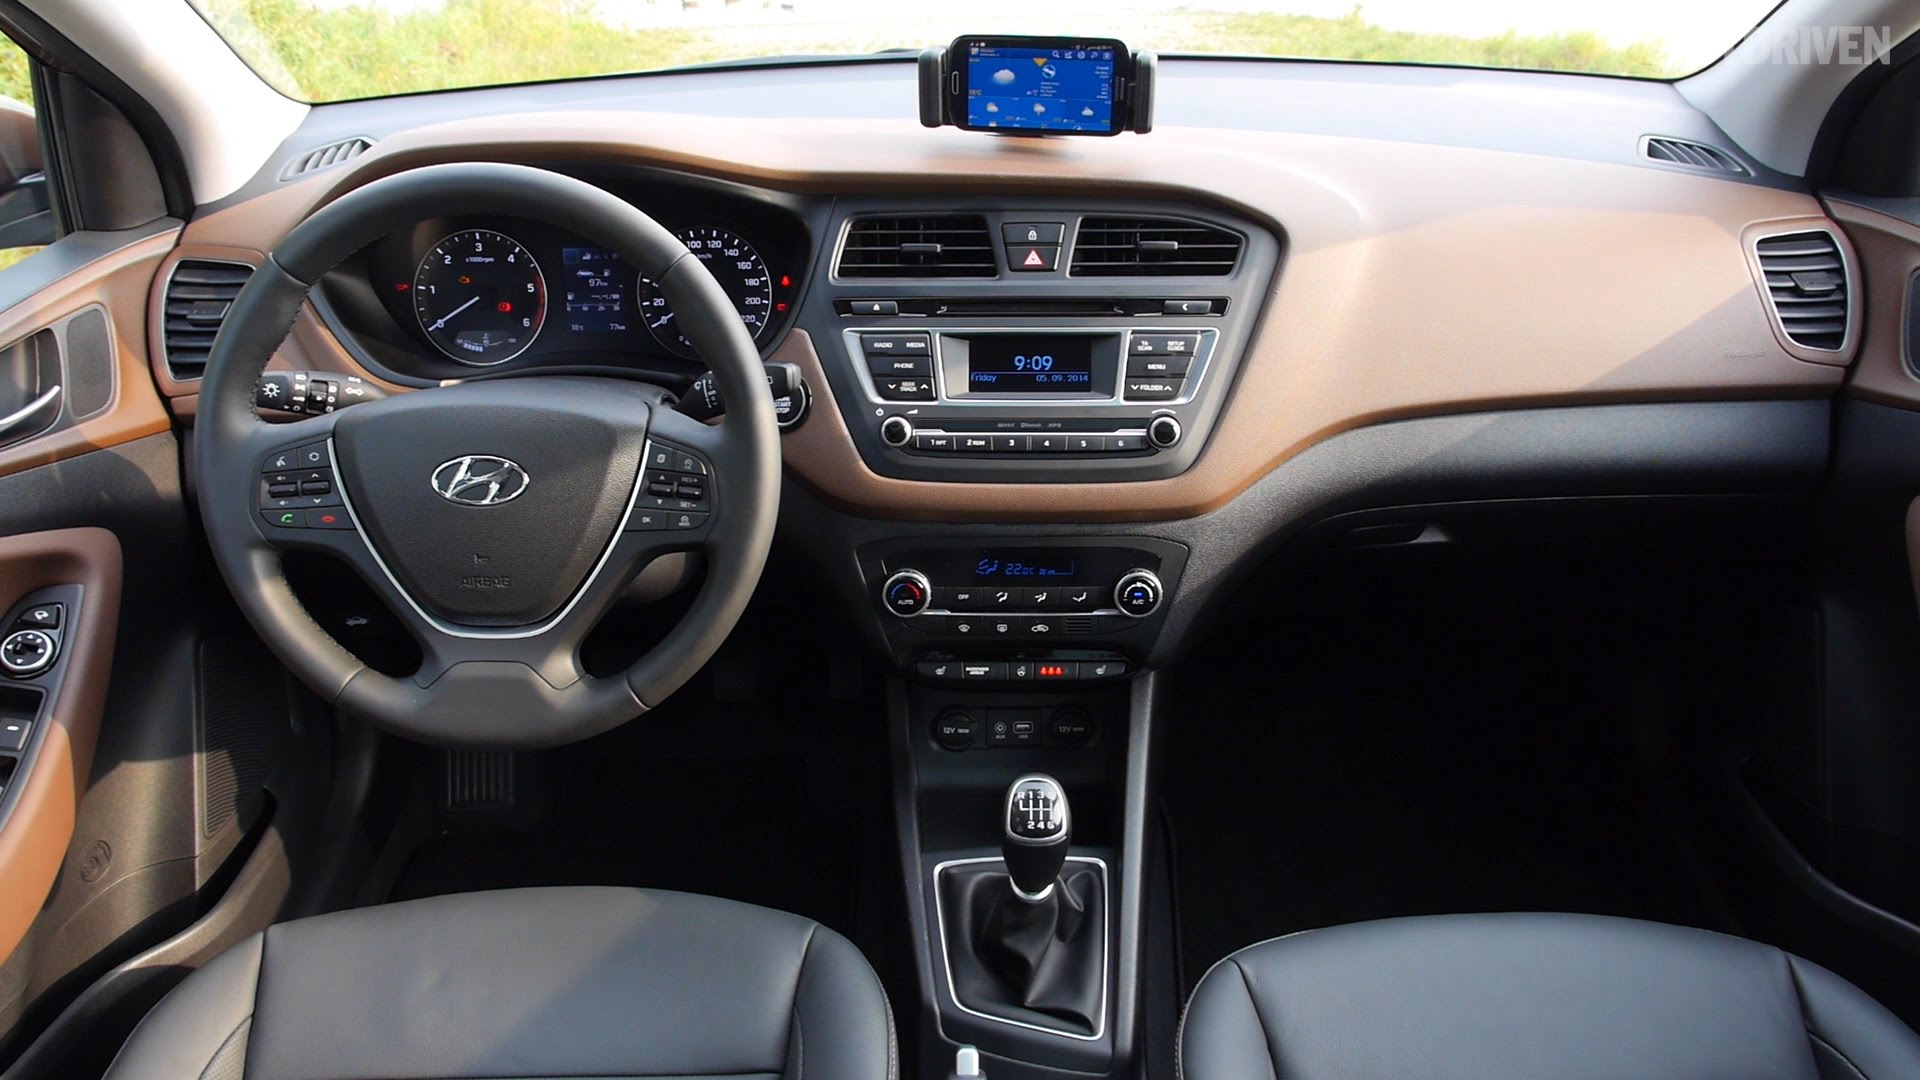 2015 Hyundai i20 (Interior shots)